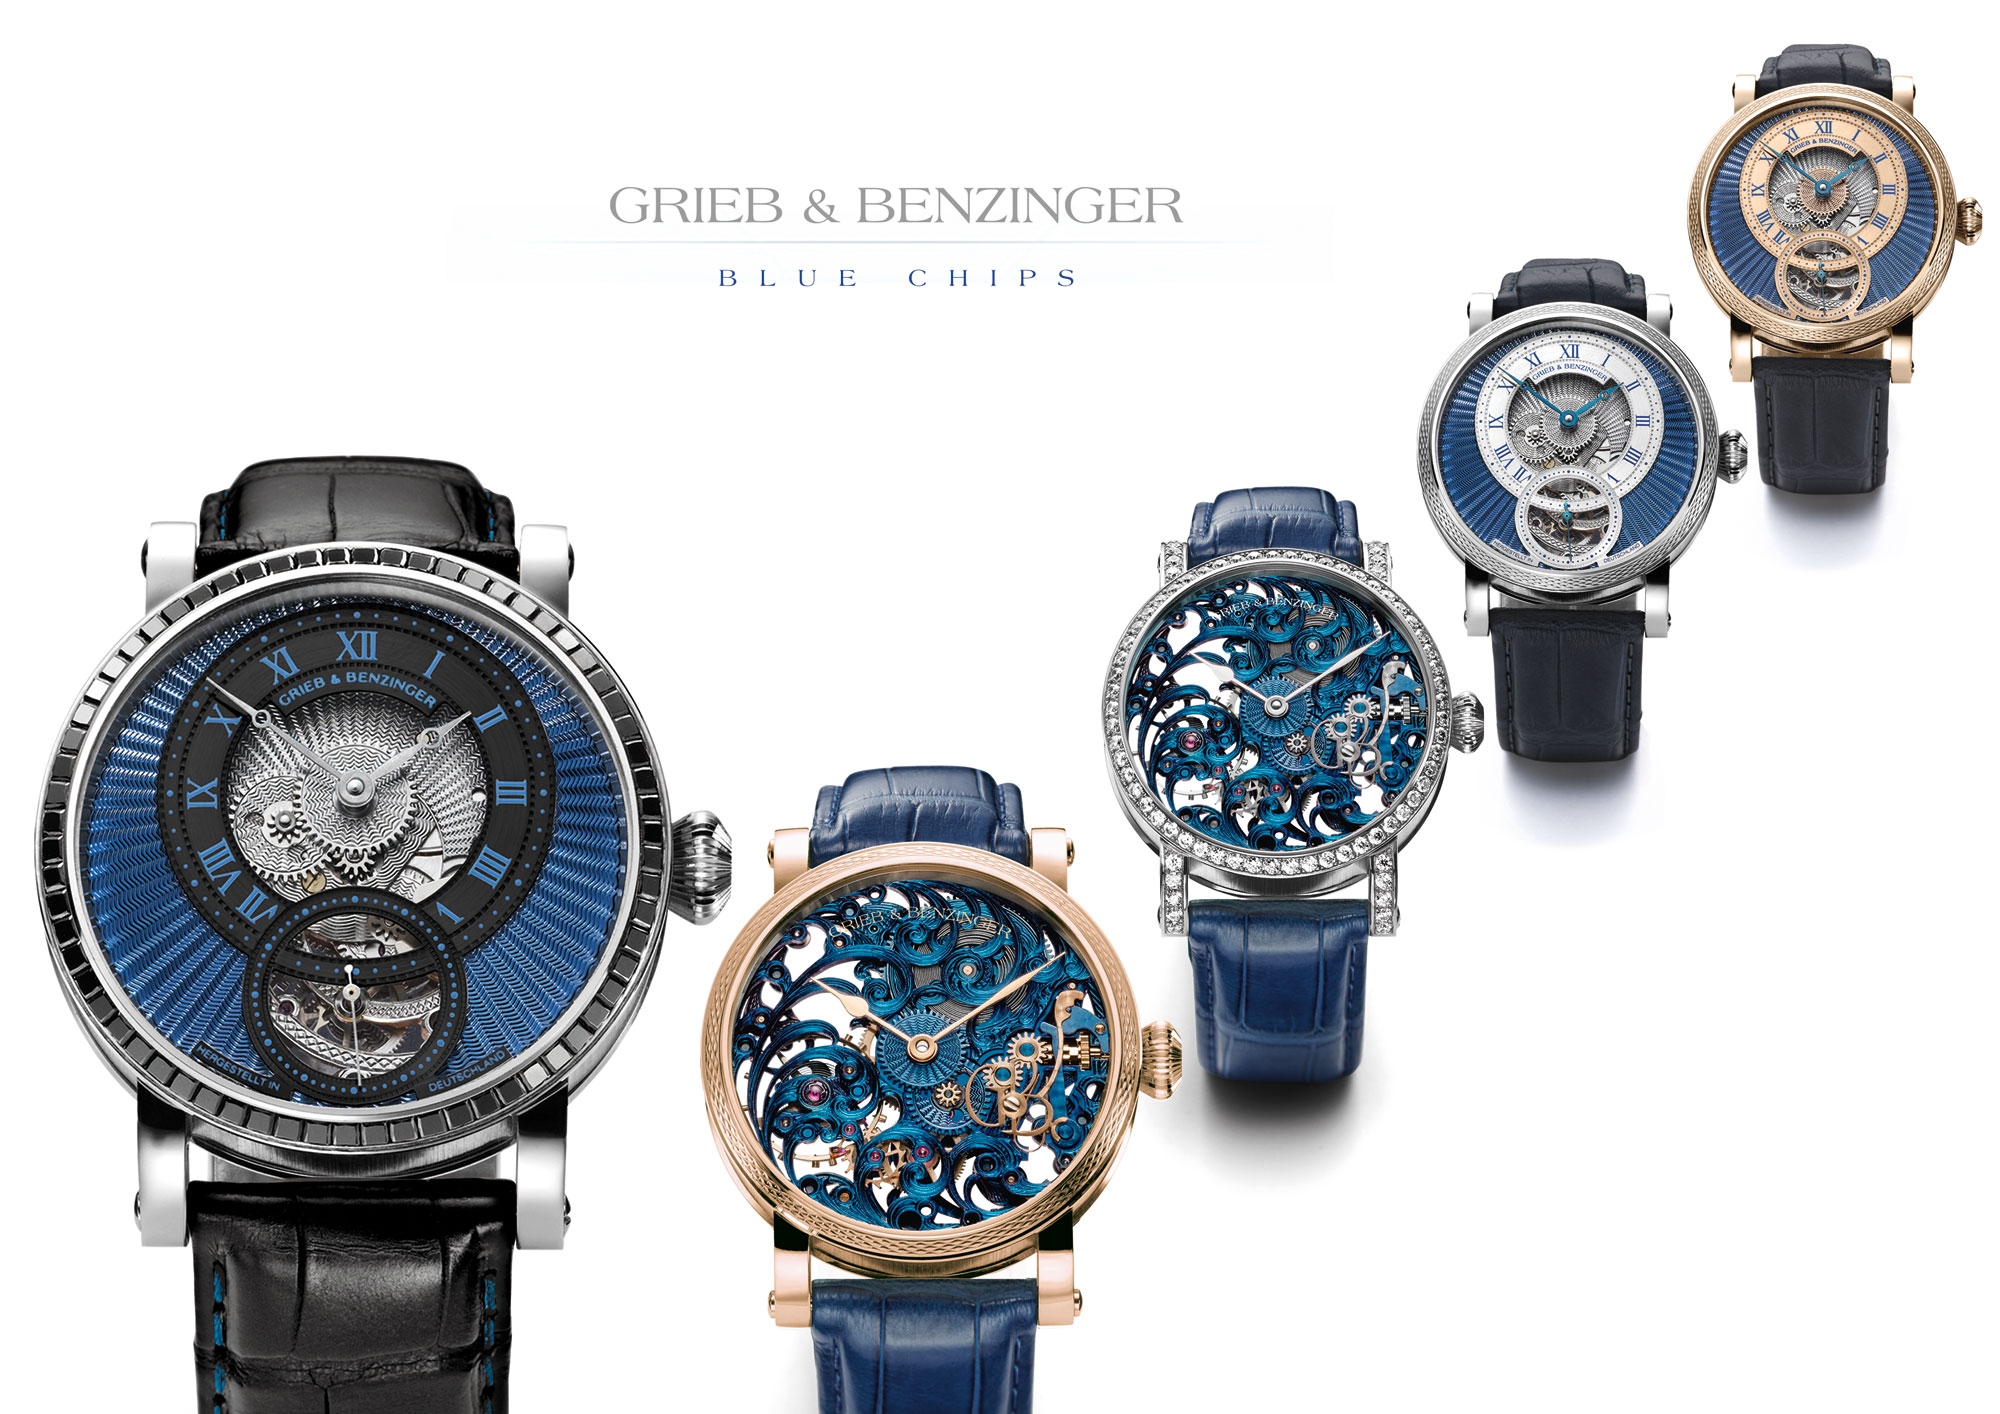 The Grieb & Benzinger Blue Chip Collection